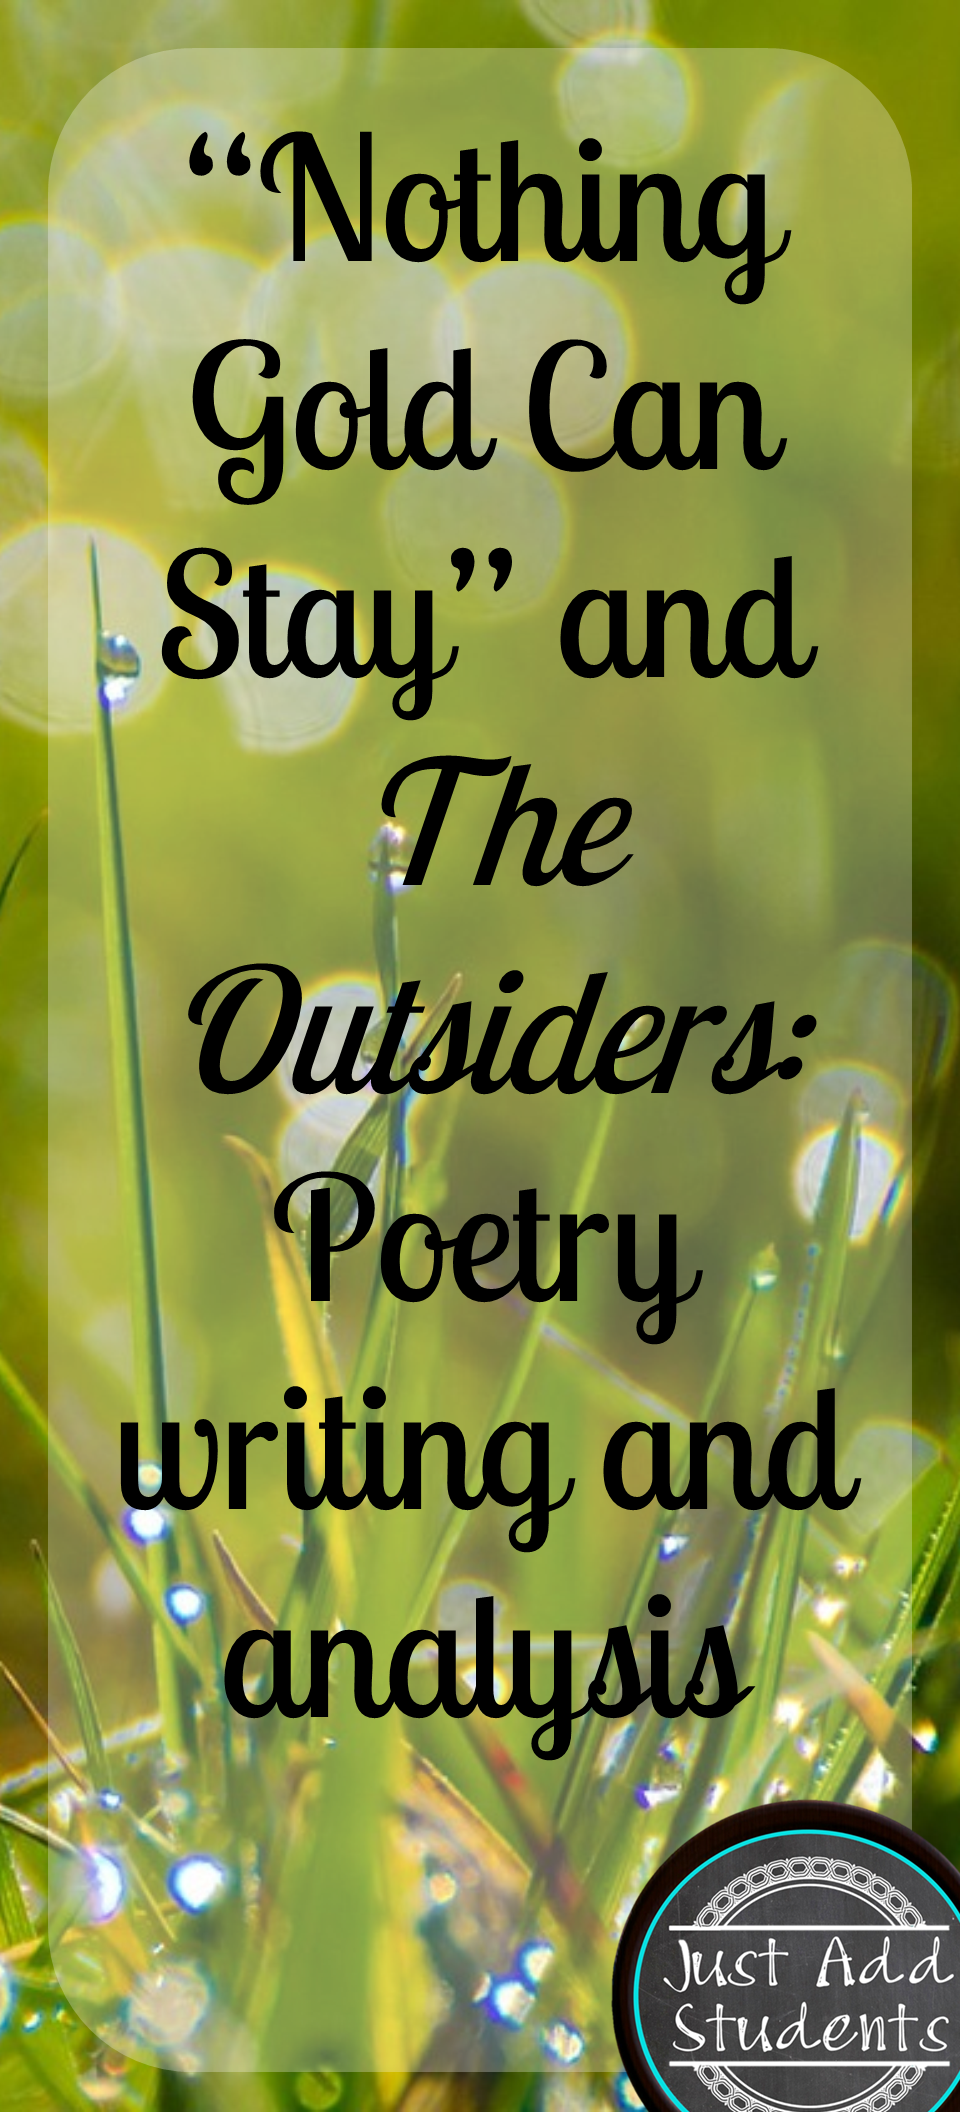 nothing gold can stay and the outsiders robert frost a natural my students the outsiders by s e hinton so analyzing the poem nothing gold can stay by robert frost is a natural extension to our discussion of